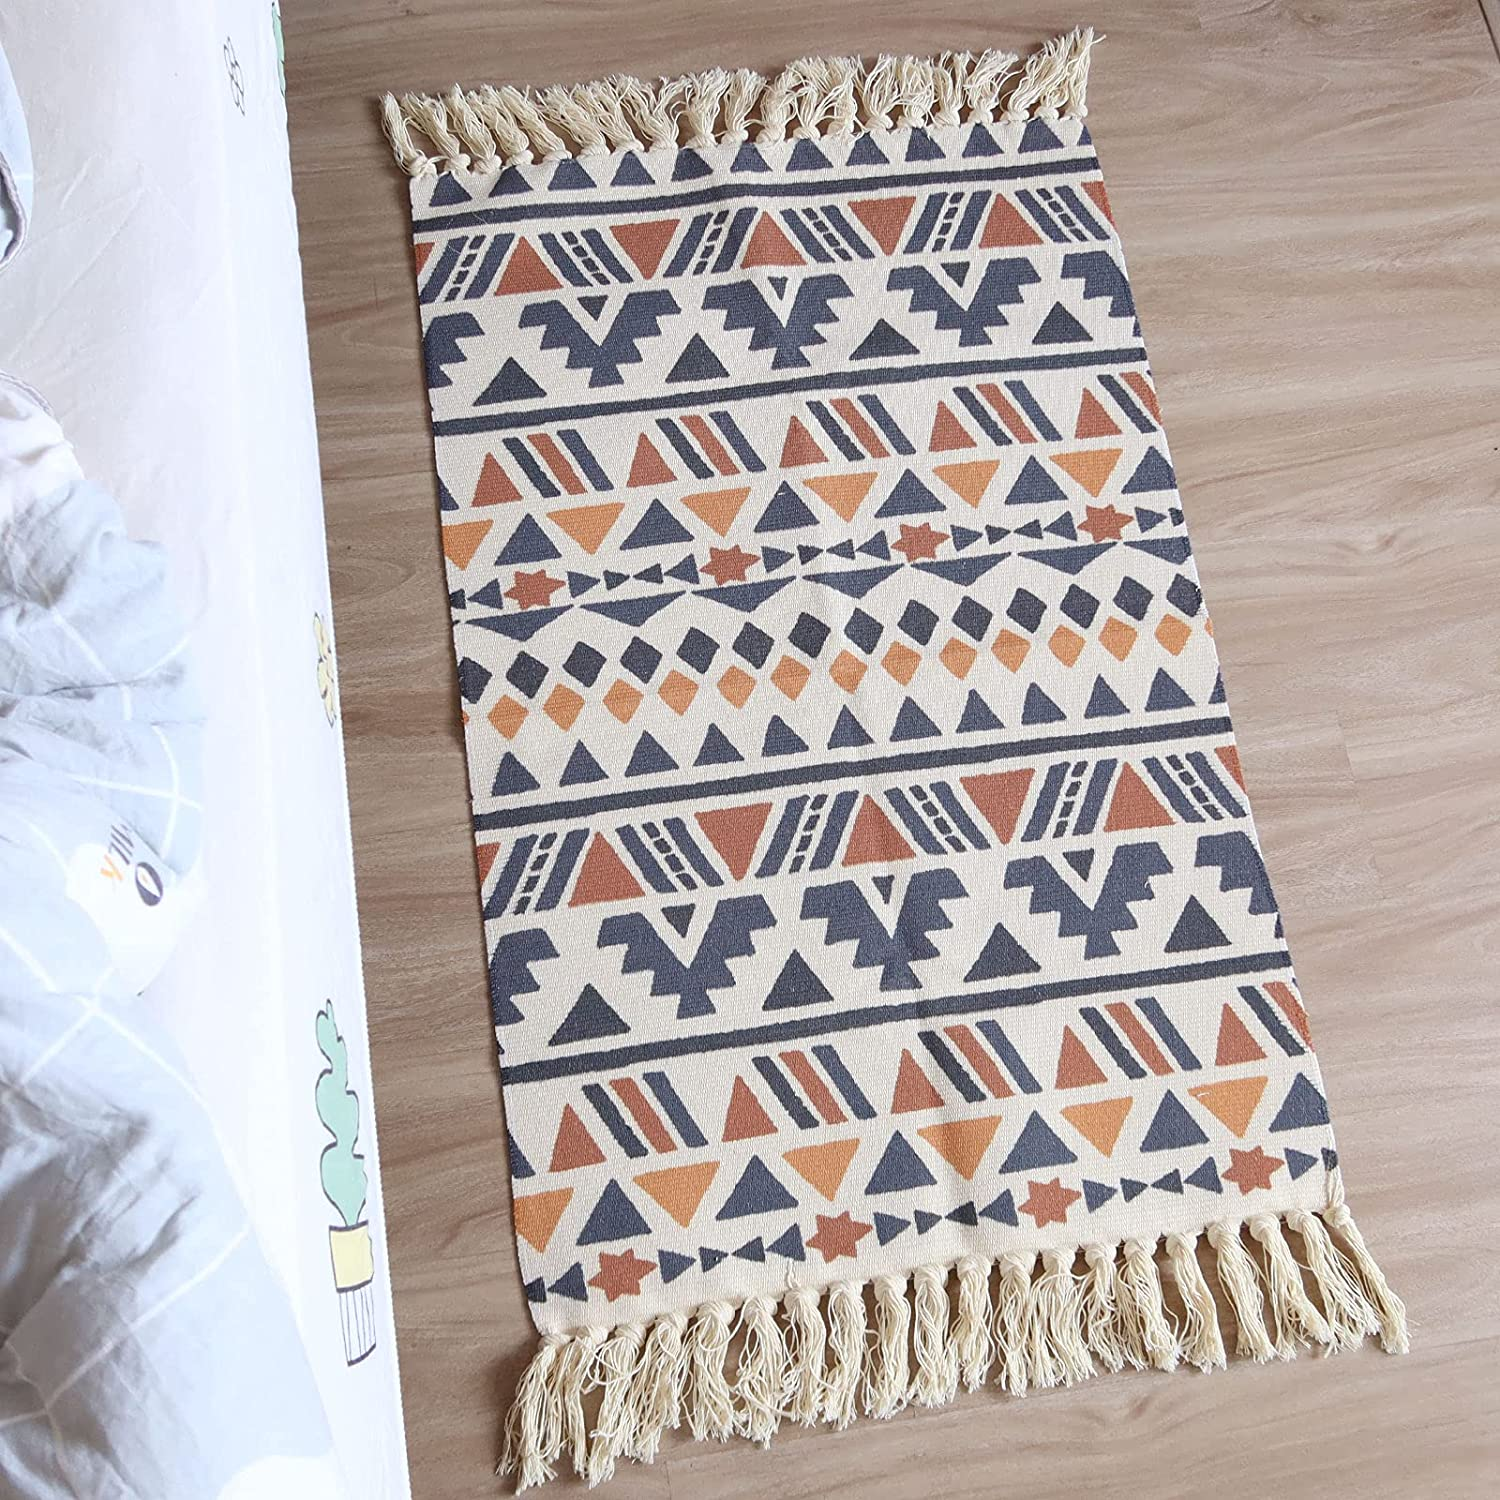 Boho Bathroom Rug 20'x20' with Tassel, Woven Small Throw Rug Decorative  Porch, Machine Washable Runner Rugs for Hallway Doorway Living Room Bedroom  ...